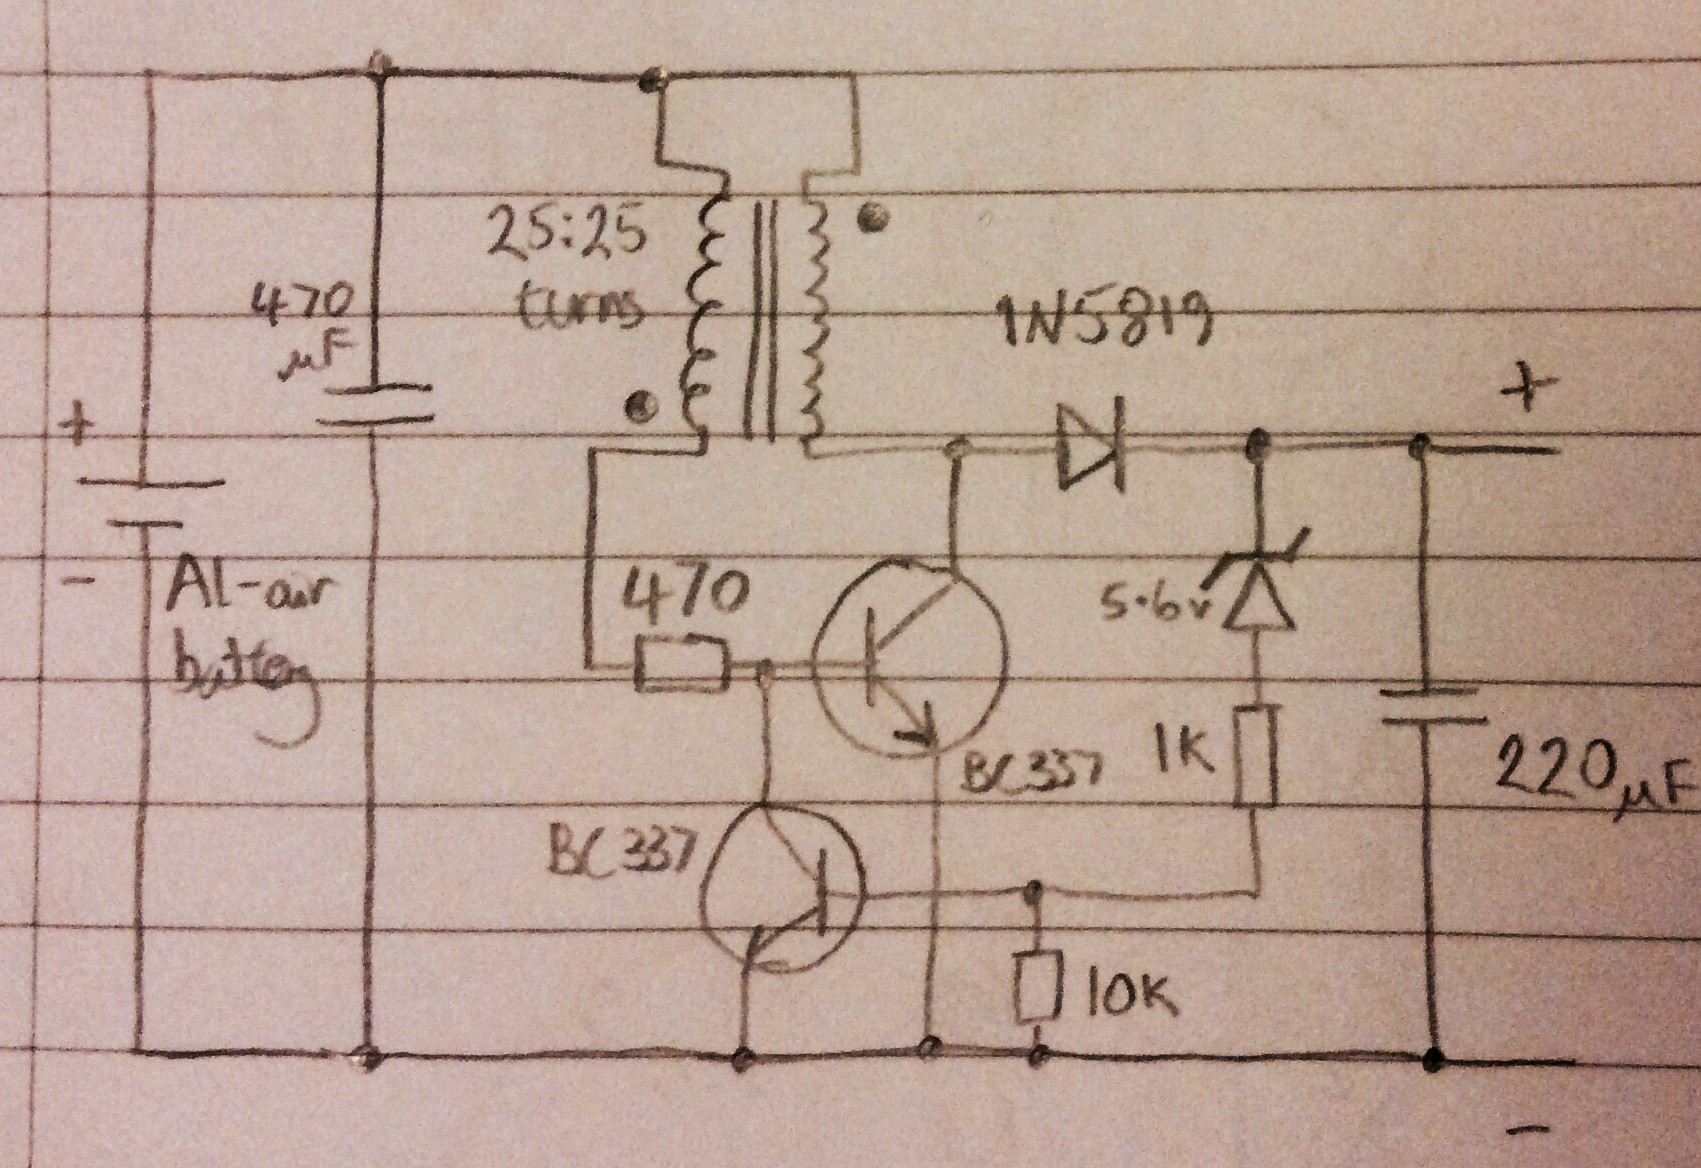 hight resolution of this is a more efficient joule thief than my first attempt shown in an earlier log entry the efficiency of this circuit i e power output from circuit